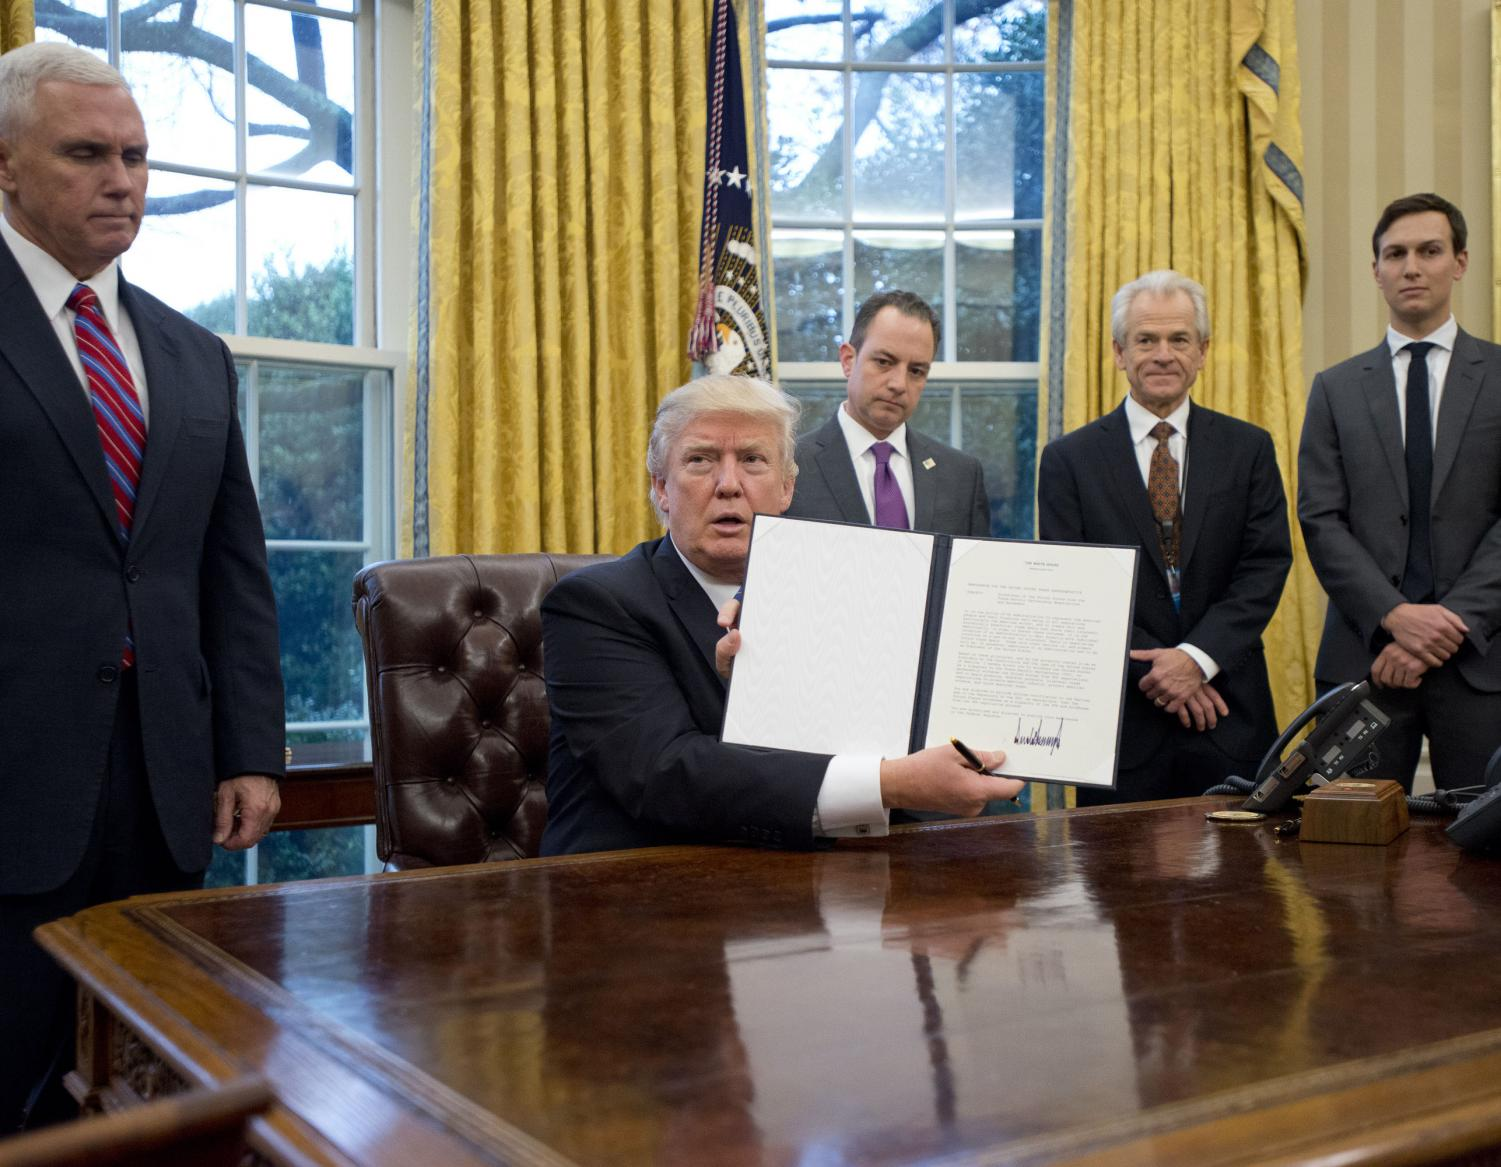 President Trump with his executive order to withdraw from the Trans Pacific Partnership on Jan. 23, 2017.